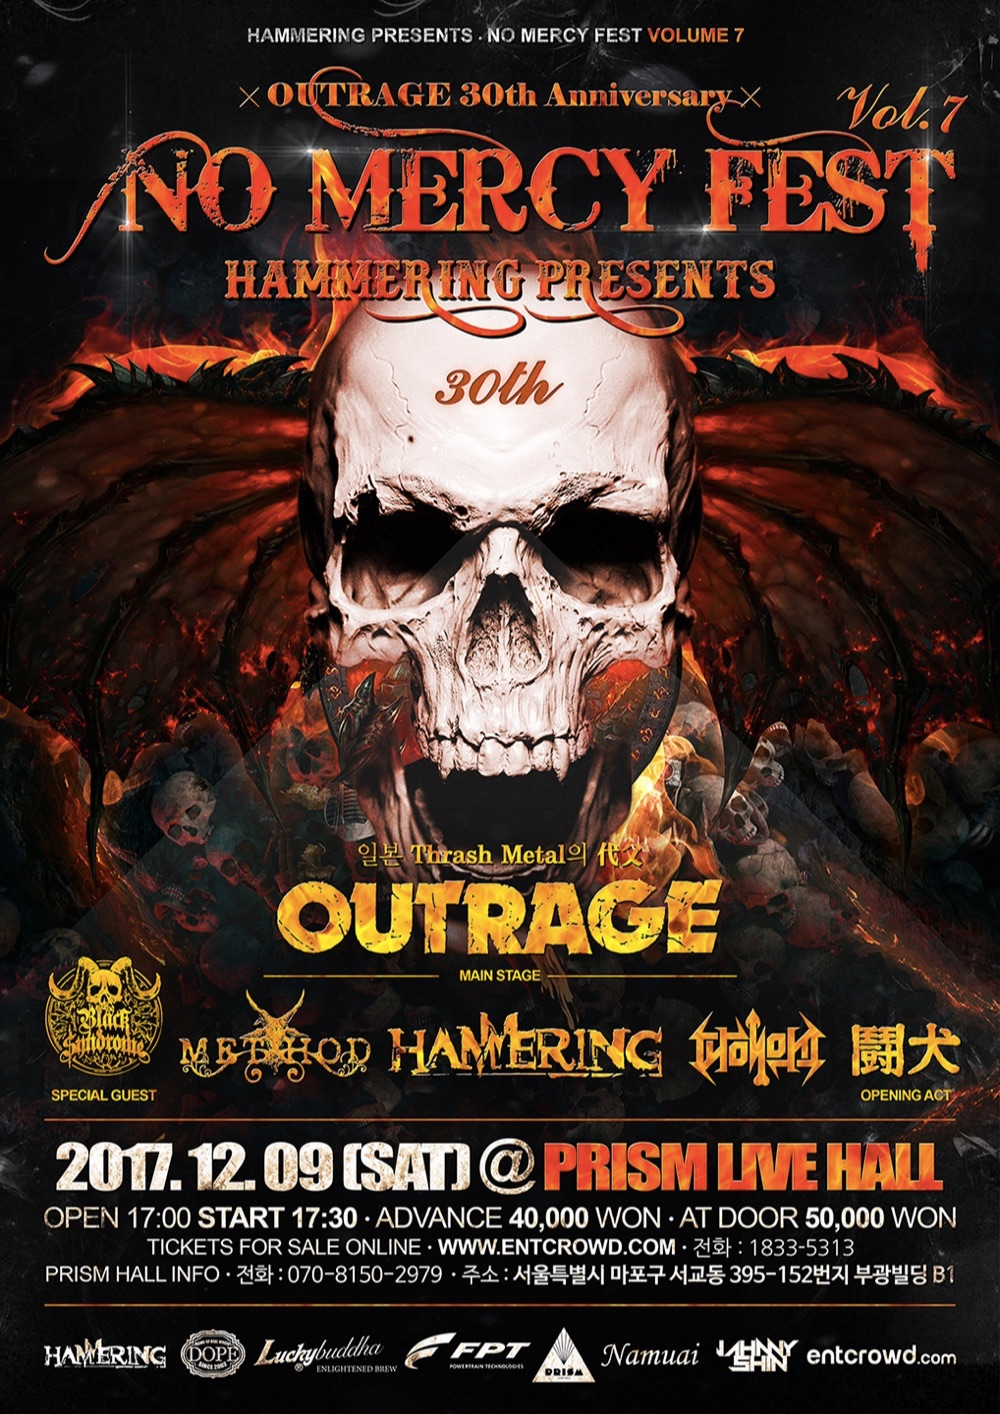 NOMERCY FEST VOL.7 & OUTRAGE 30주년 내..